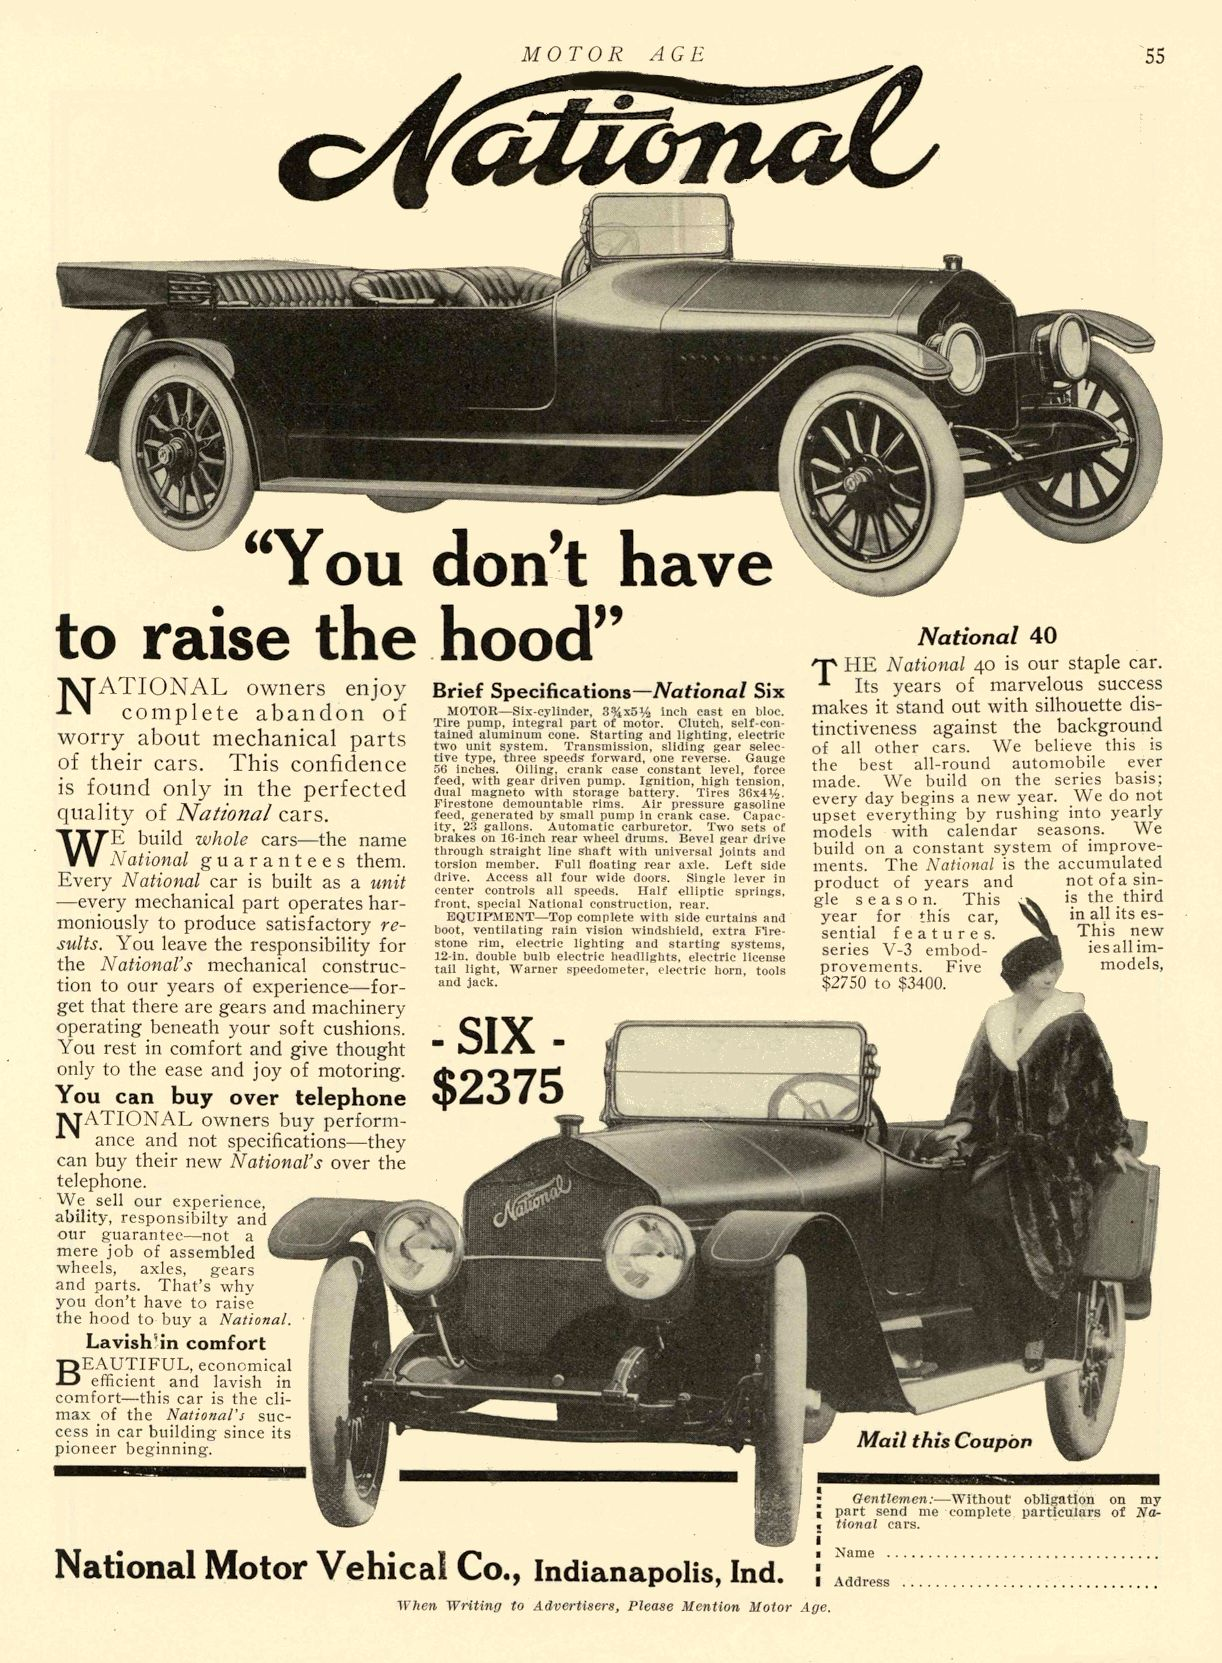 """1913 12 18 1914 NATIONAL National """"SIX"""" $2375 """"You don't have to raise the hood"""" National Motor Vehicle Co. Indianapolis, IND MOTOR AGE December 25, 1913 8.5″x12″ page 55"""